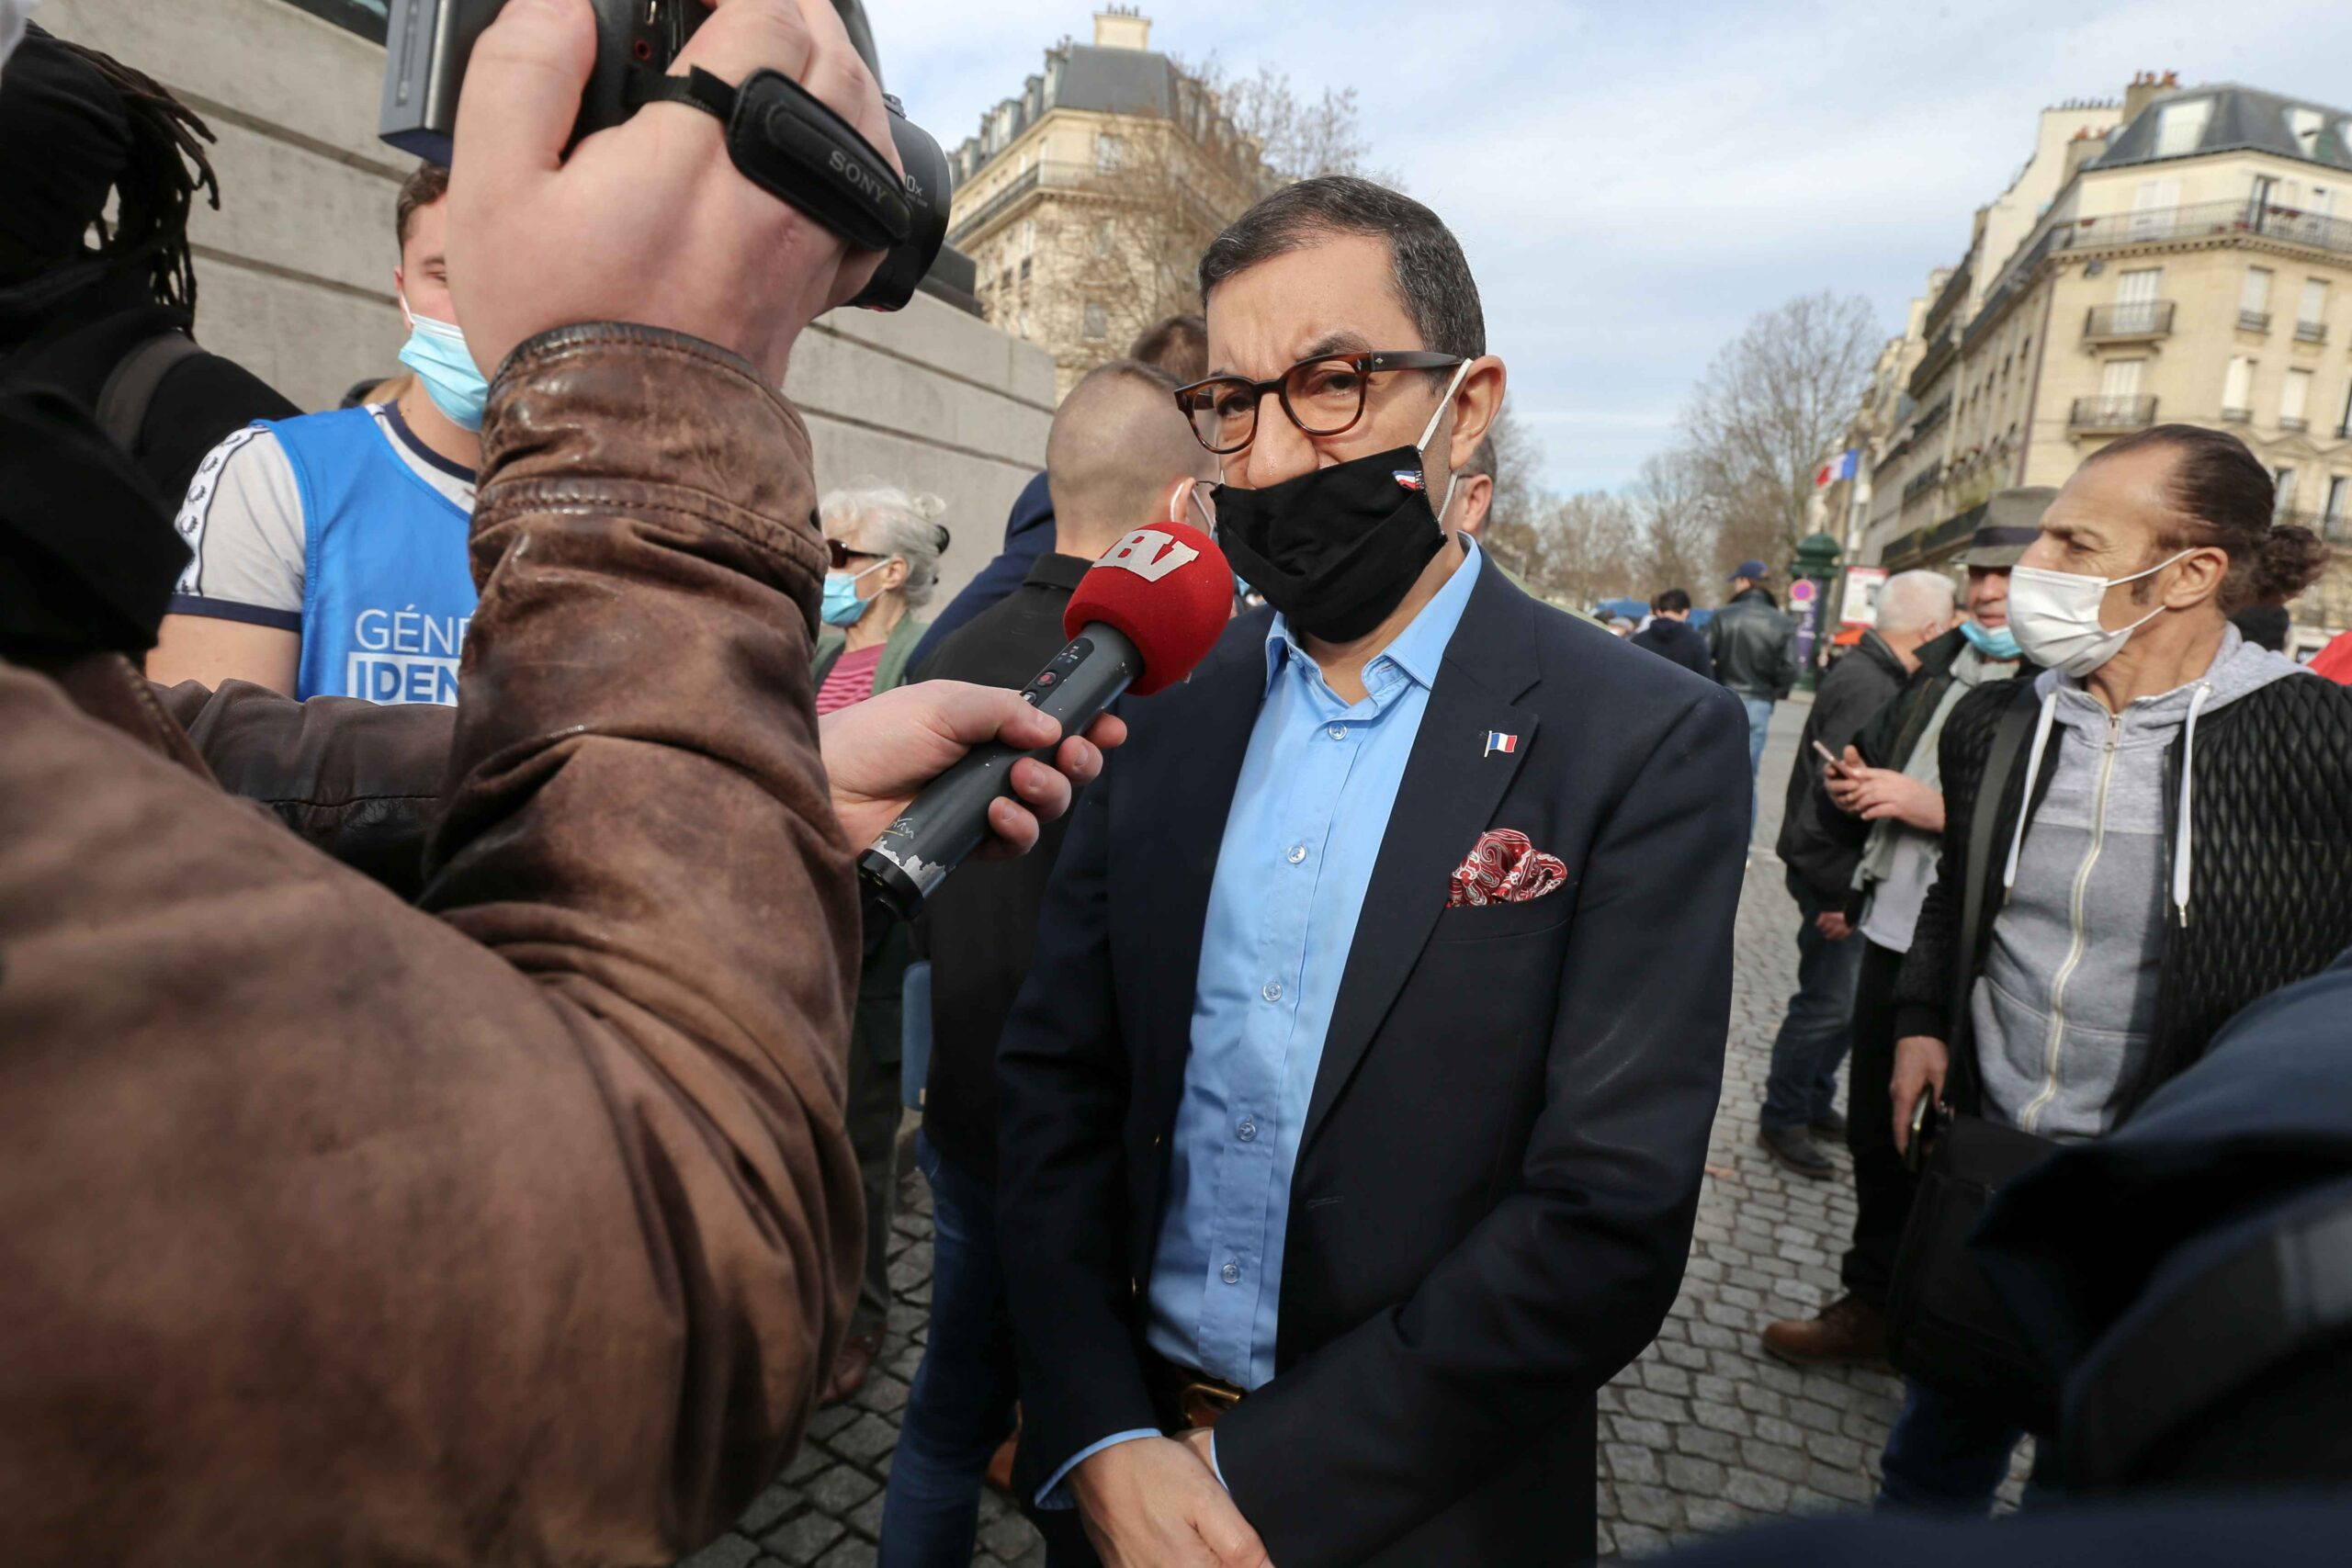 Member of far-right Rassemblement National's (RN) Jean Messiha (C) speaks with the press during a protest against the far right Generation Identitaire group's potential dissolution in Place Denfert Rochereau, in Paris on February 20, 2021. The dissolution